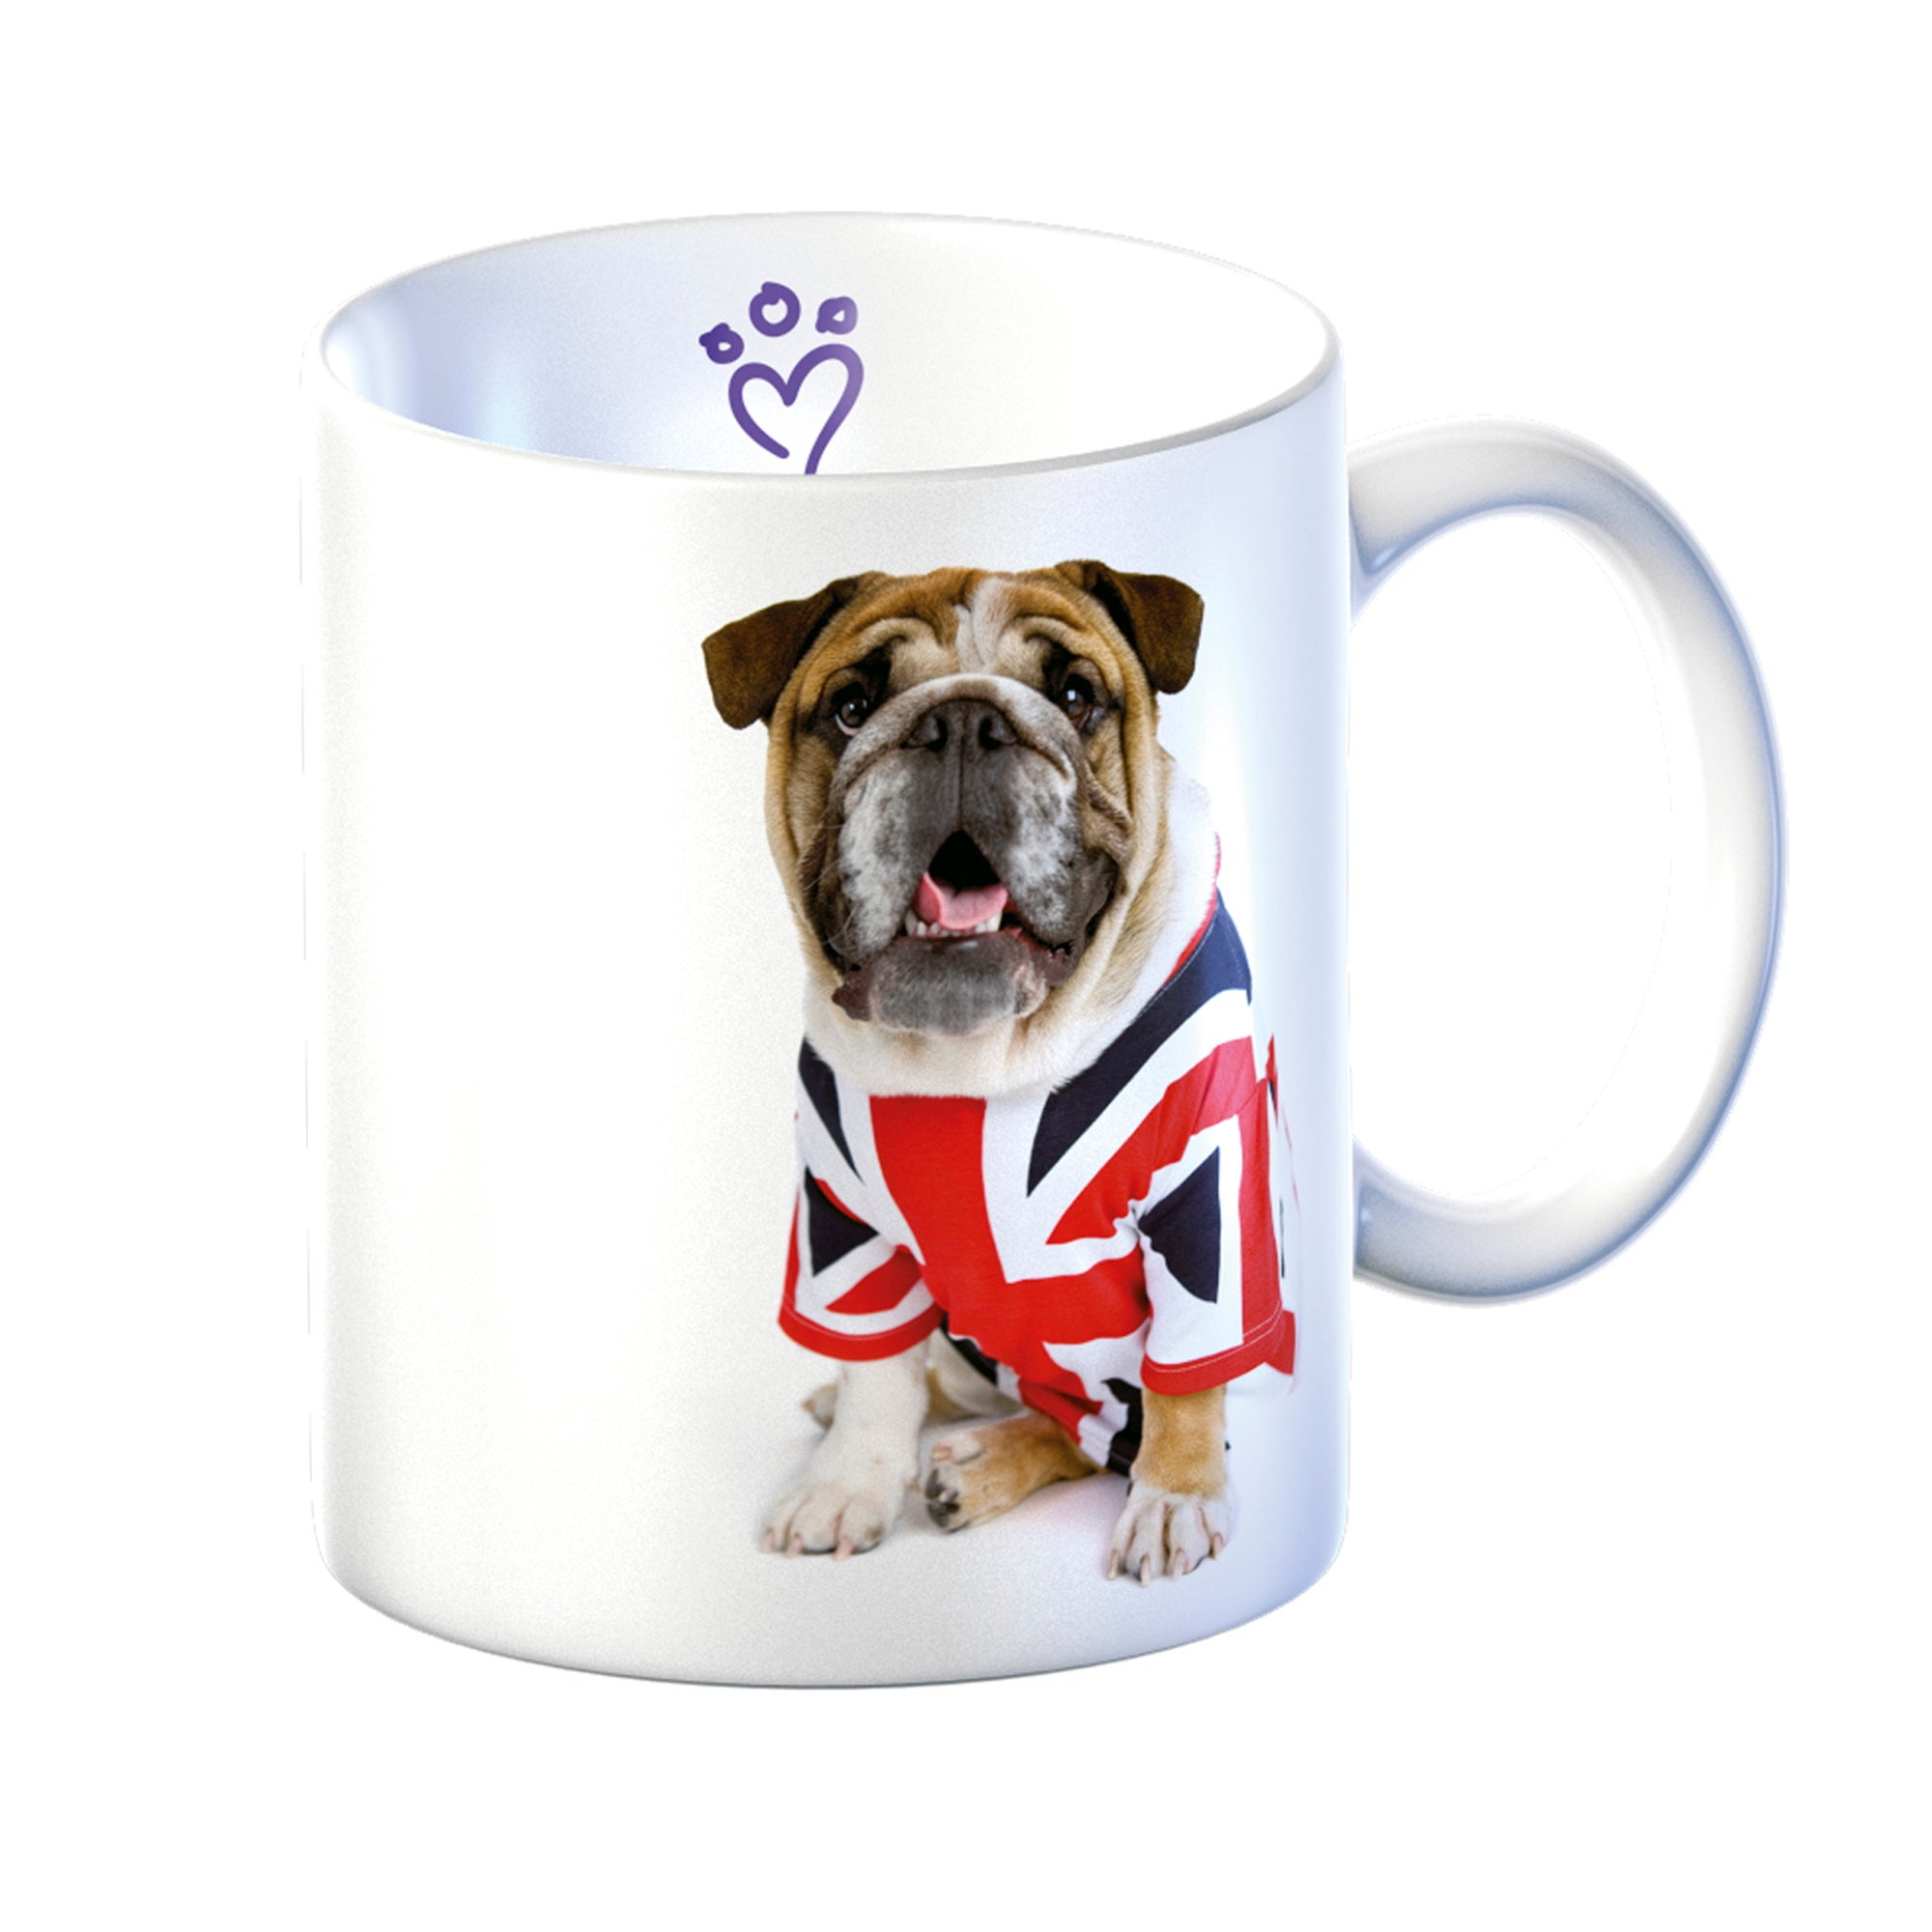 George Bulldog Mug